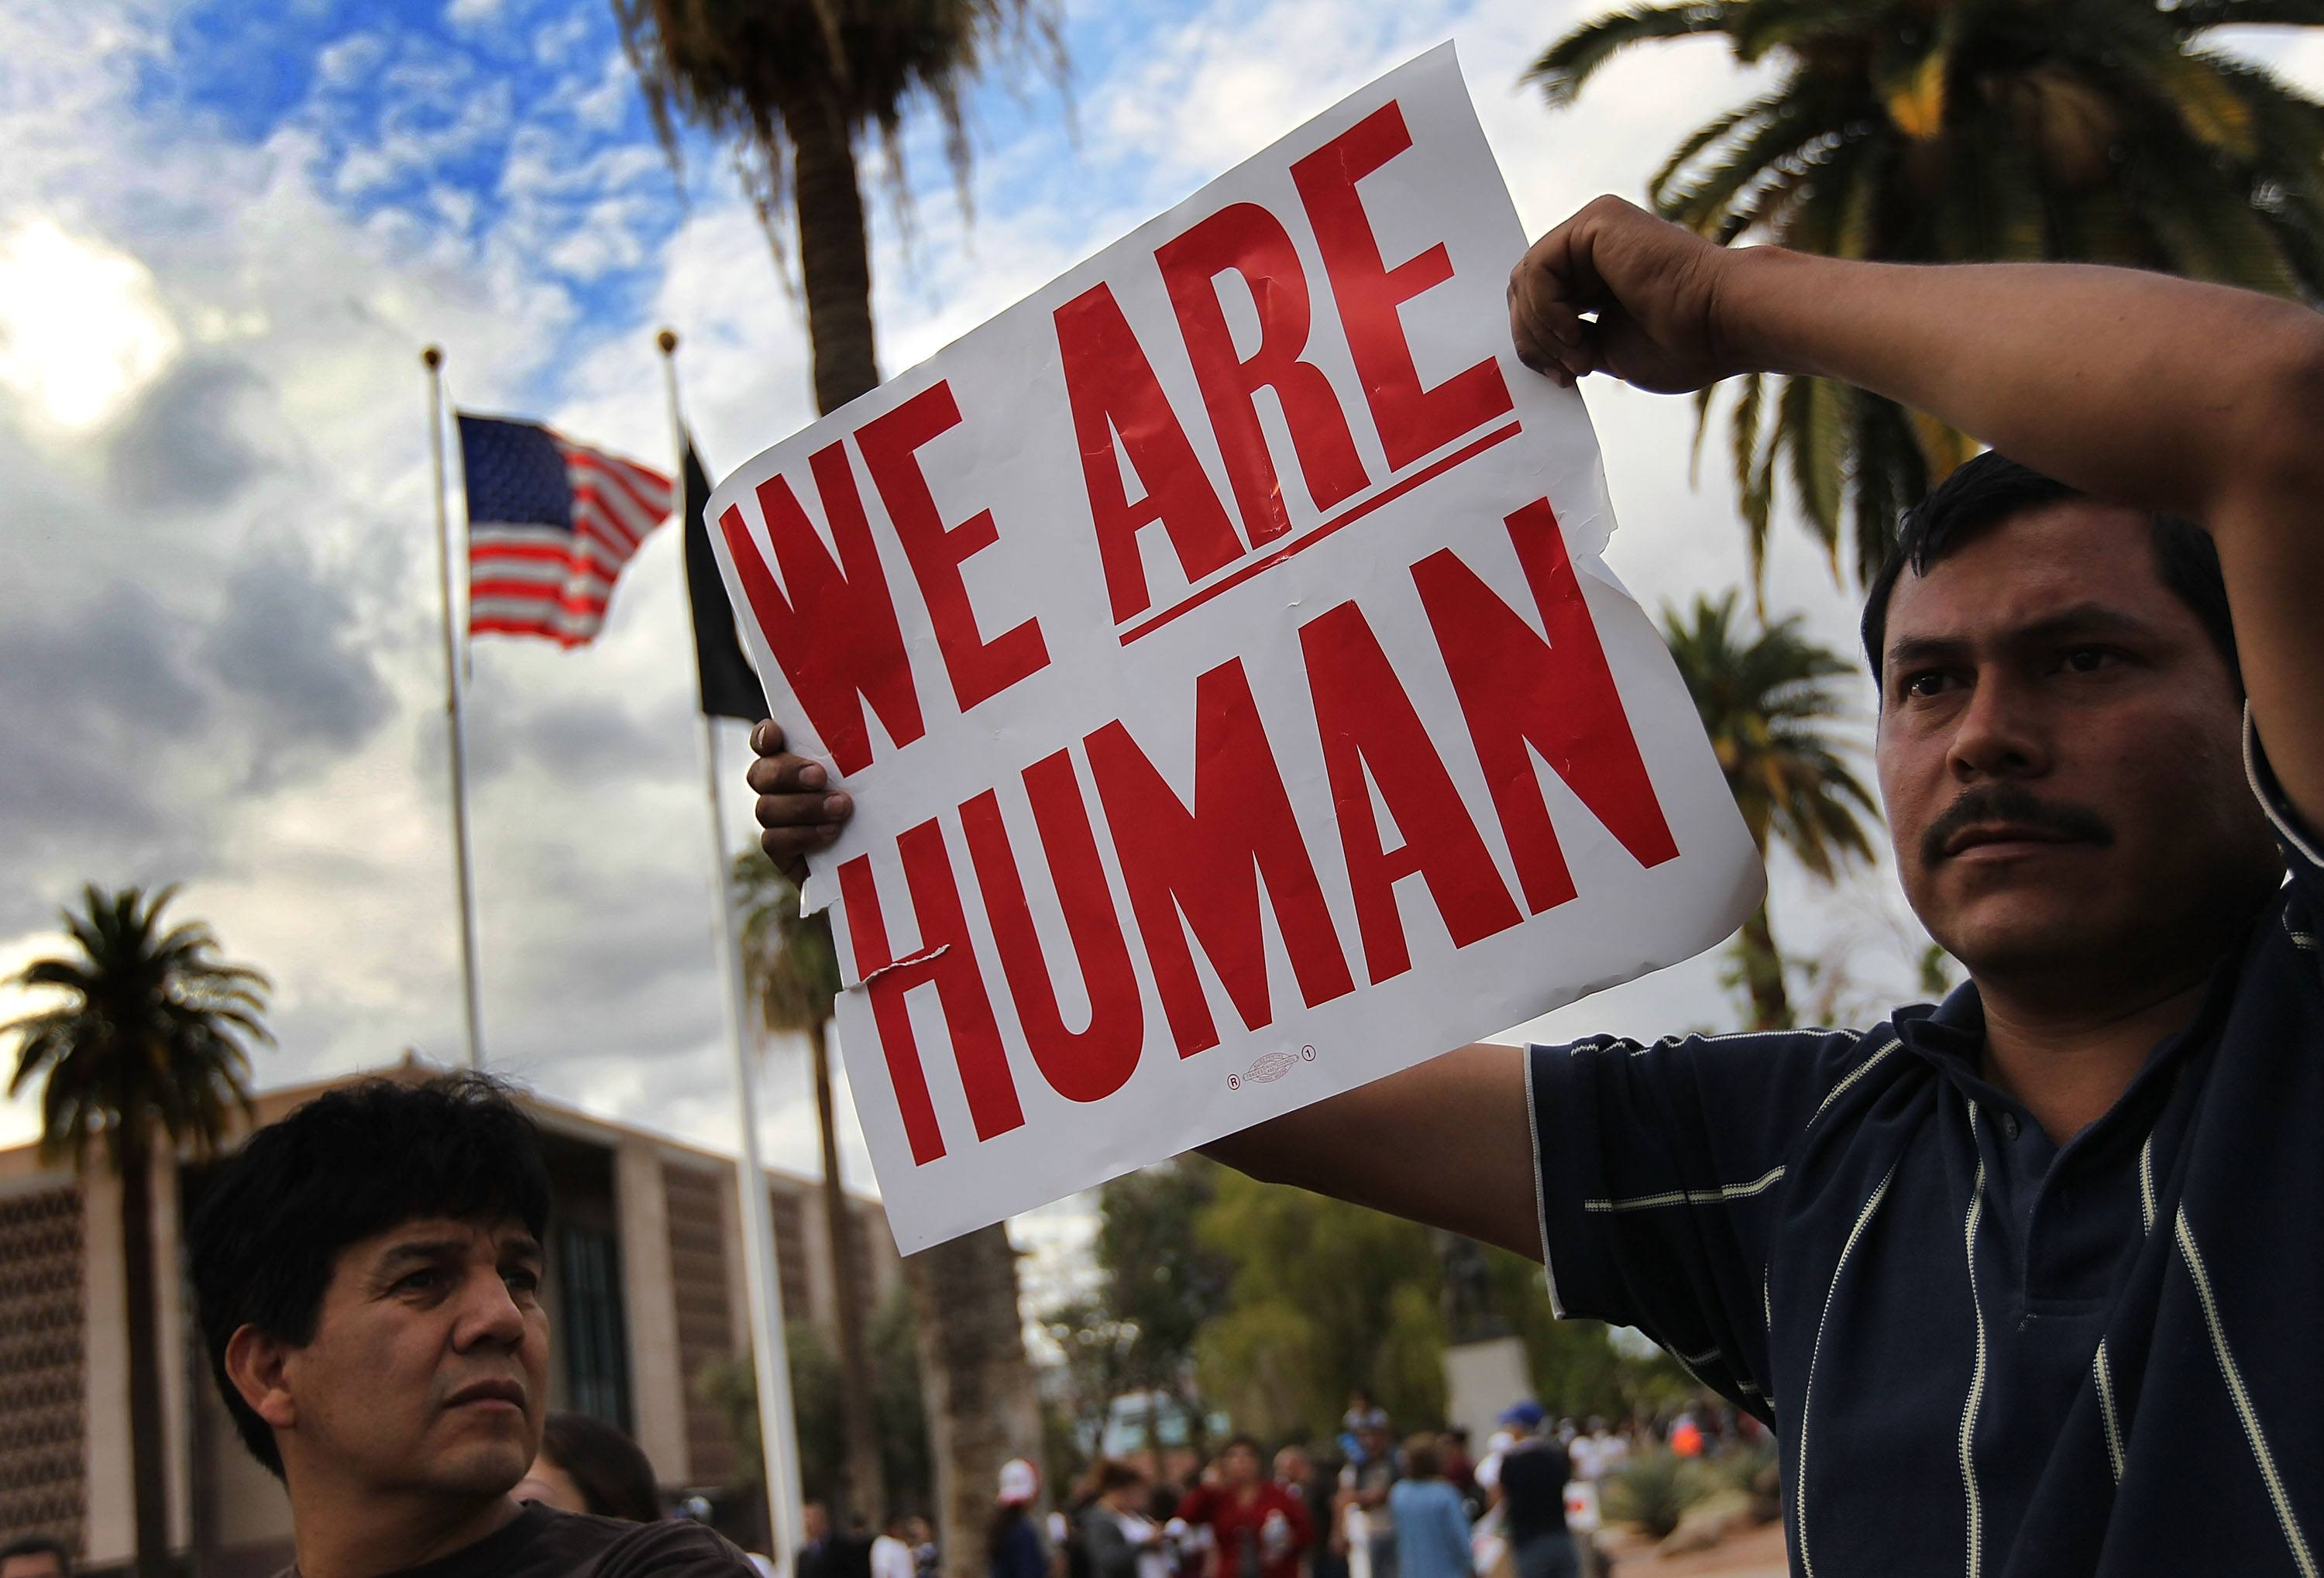 Demonstrators protest y John discrimination and discriminatory practices in Arizona